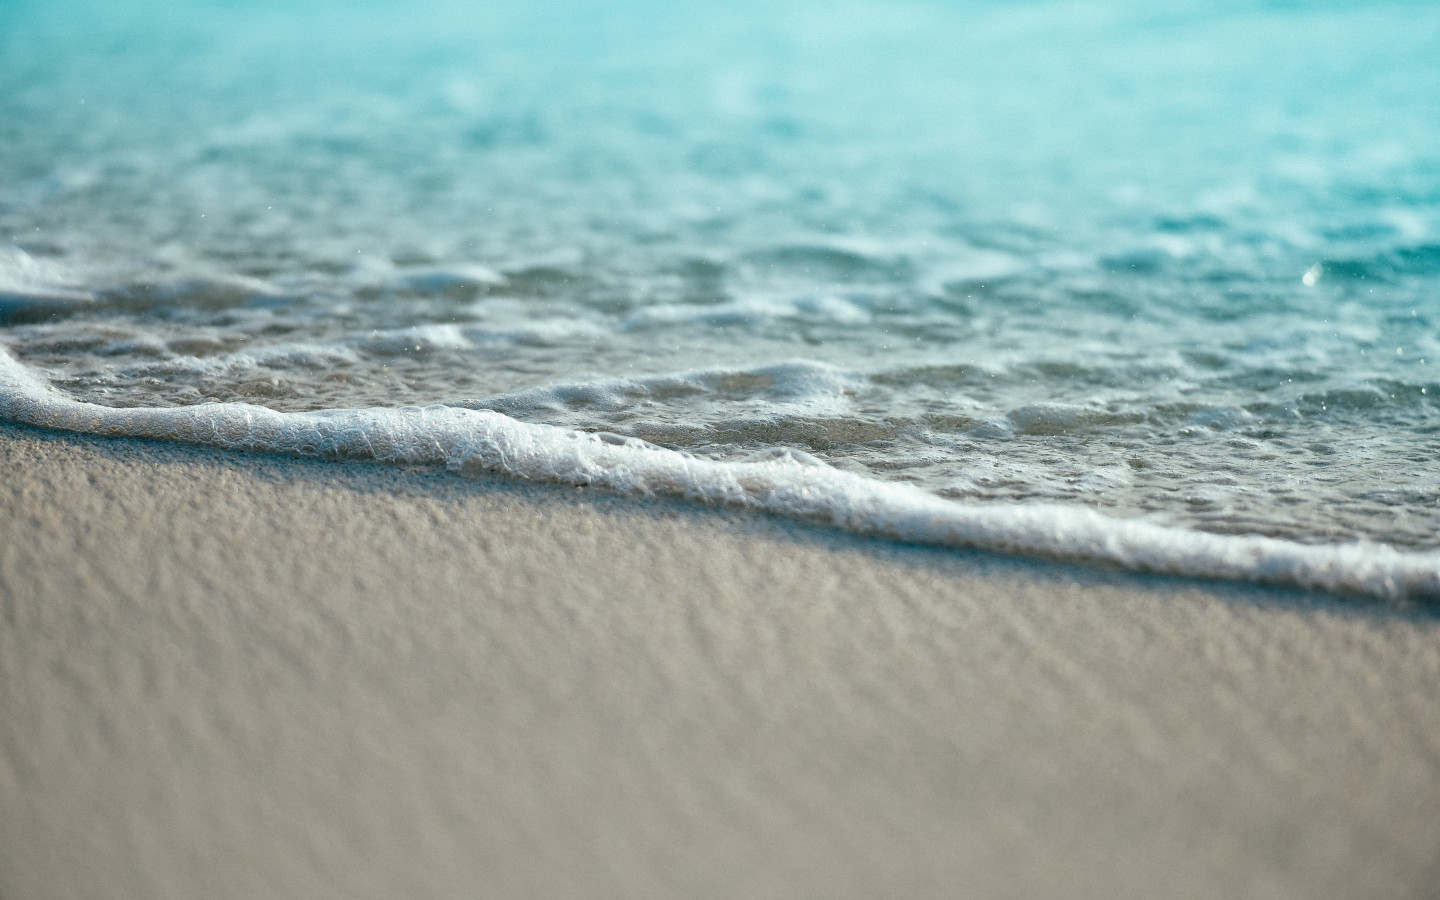 Turquoise ocean waters from Maldives wallpaper 1440x900